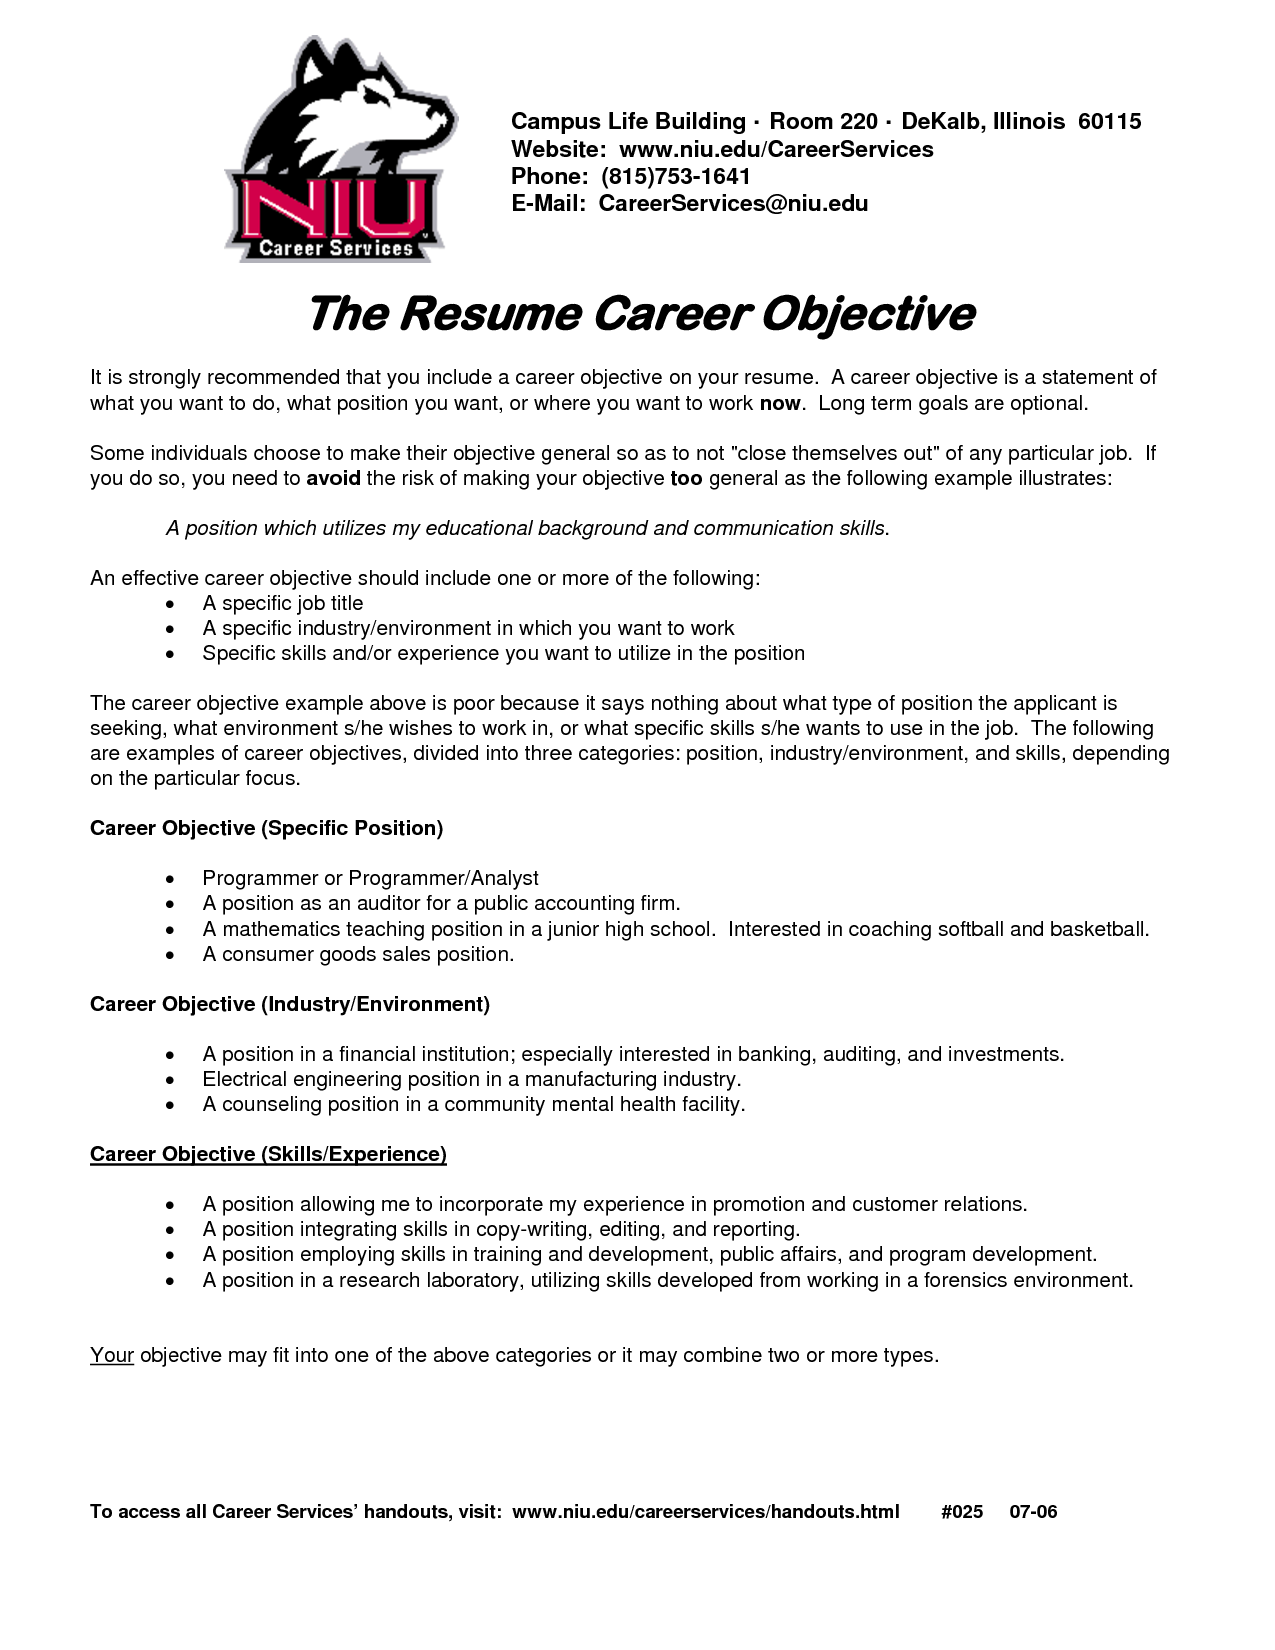 Resume Objectives Samples Httpswwwgooglesearchqobjective Resume  Resume